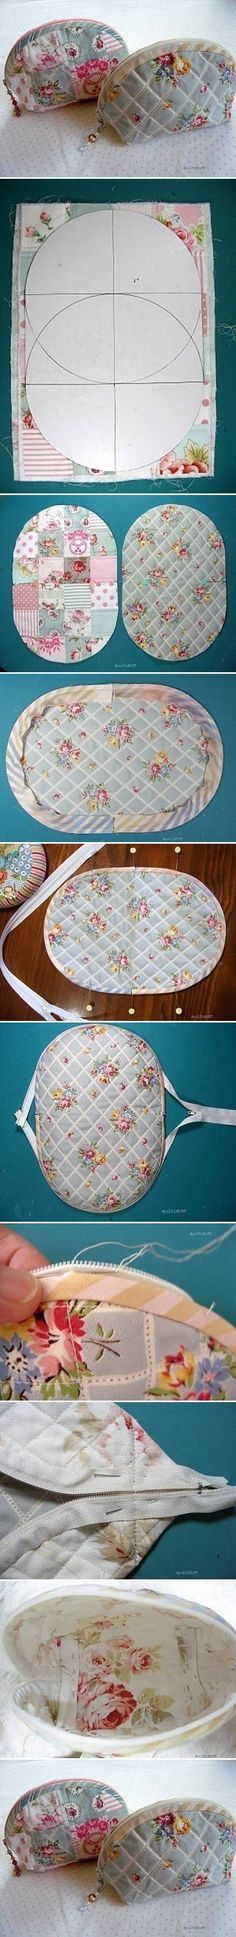 DIY Sew Makeup Bag DIY Sew Makeup Bag